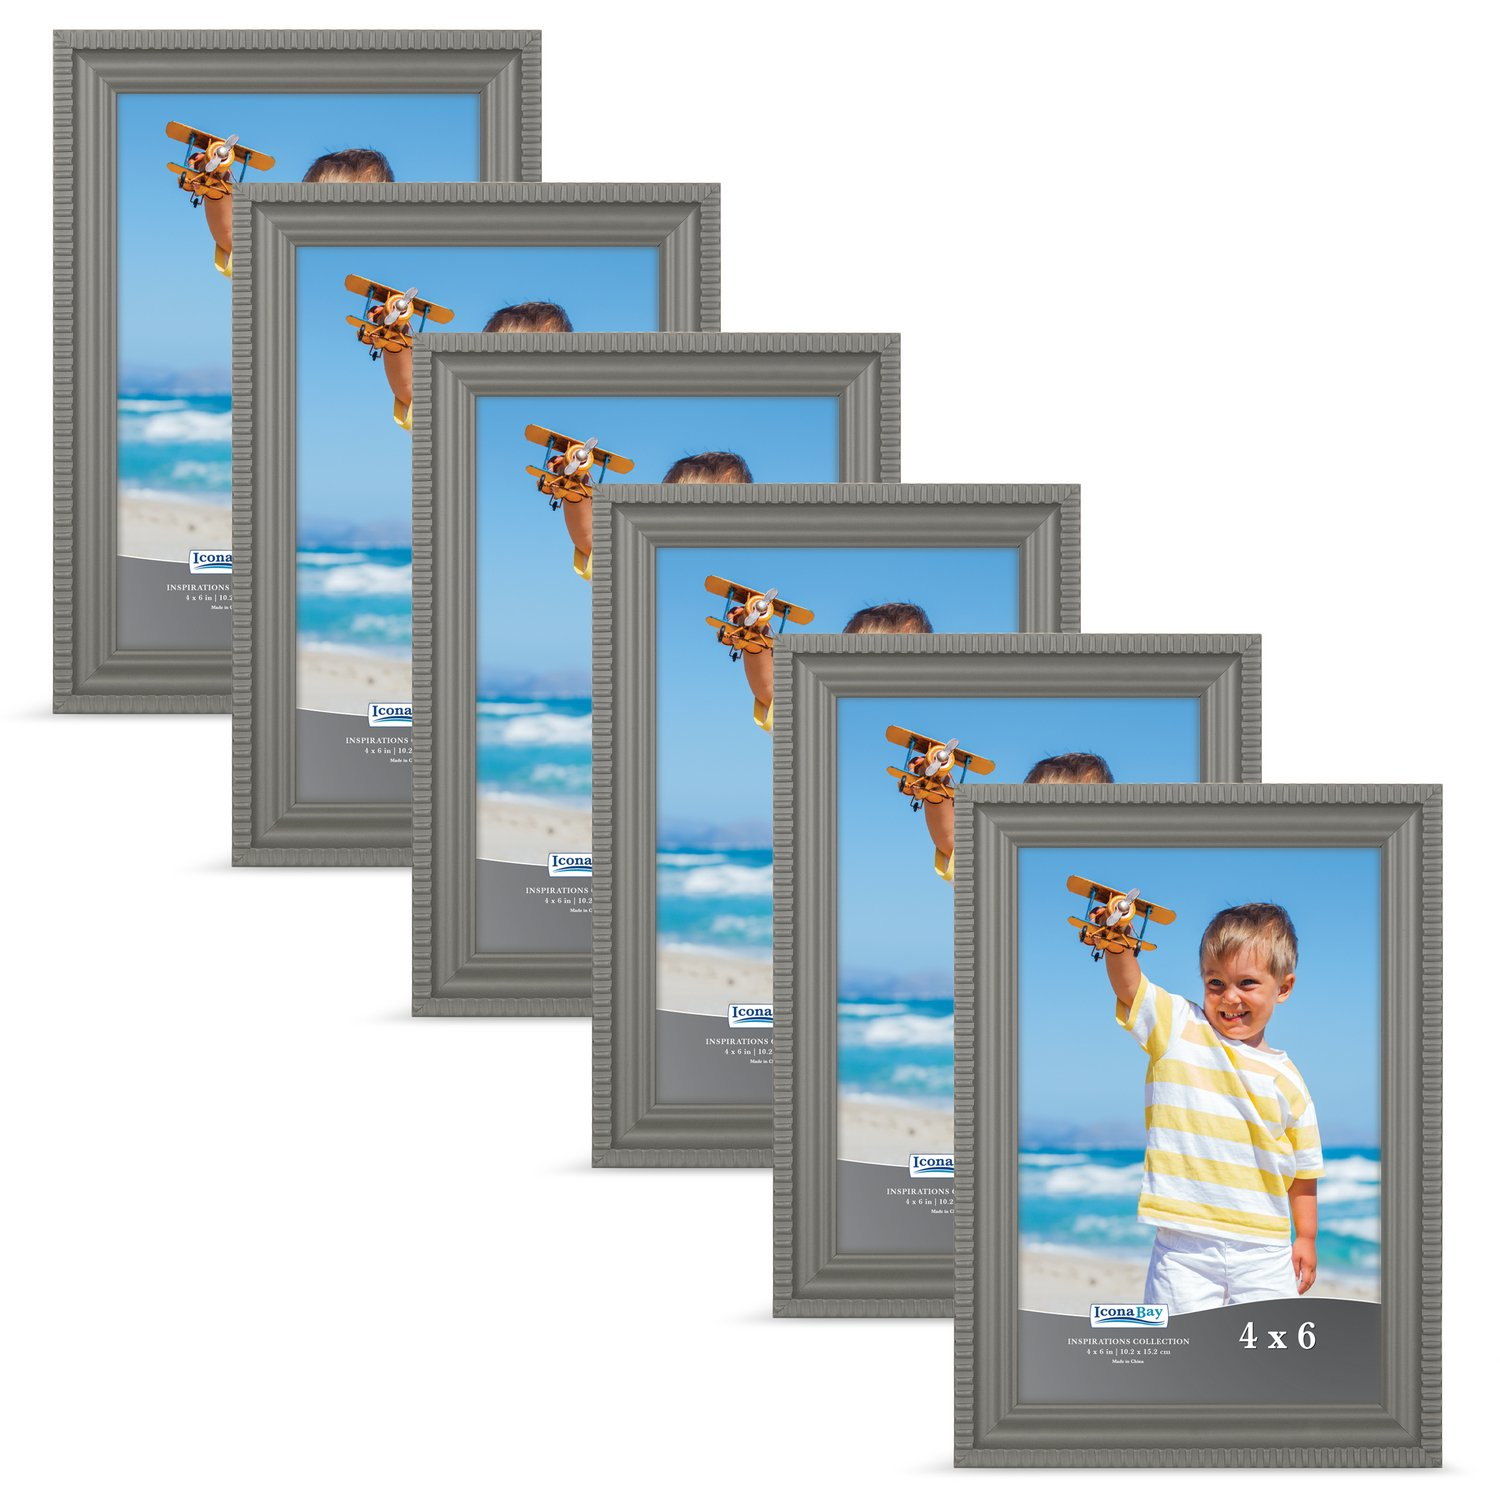 Icona Bay 4x6 Black Picture Frames (4 x 6, 2-Pack, Black), Wall Mount or Table Top Black Picture Frame, Display 4 by 6 Frame Vertically, or Horizontally as 6x4, Inspirations Collection